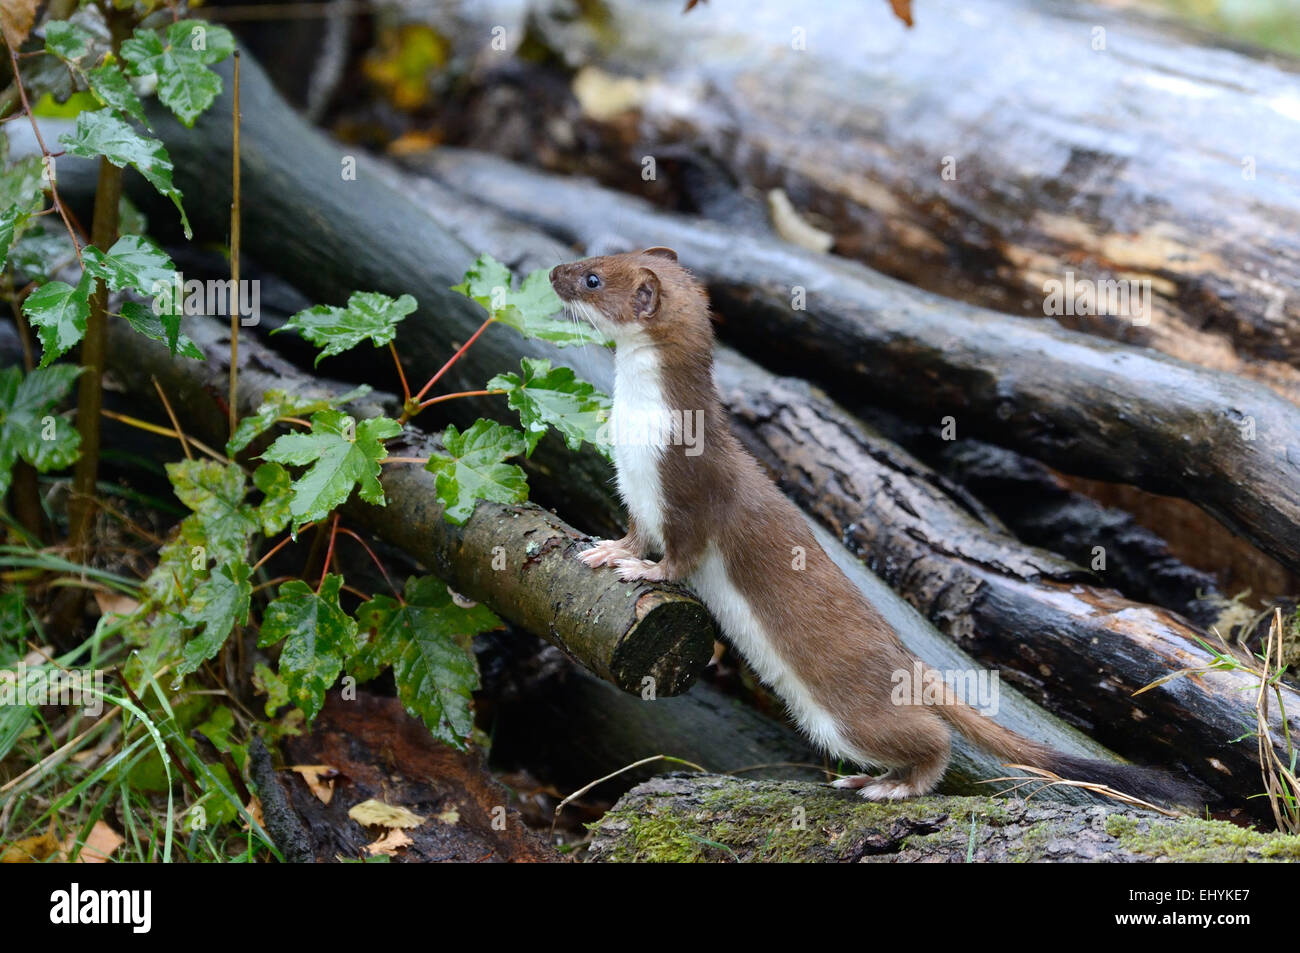 Ermine, animal, autumn, big weasel, short tail weasel, Mustela erminea, predator, canids, martens, mustelidae, Endemical, - Stock Image